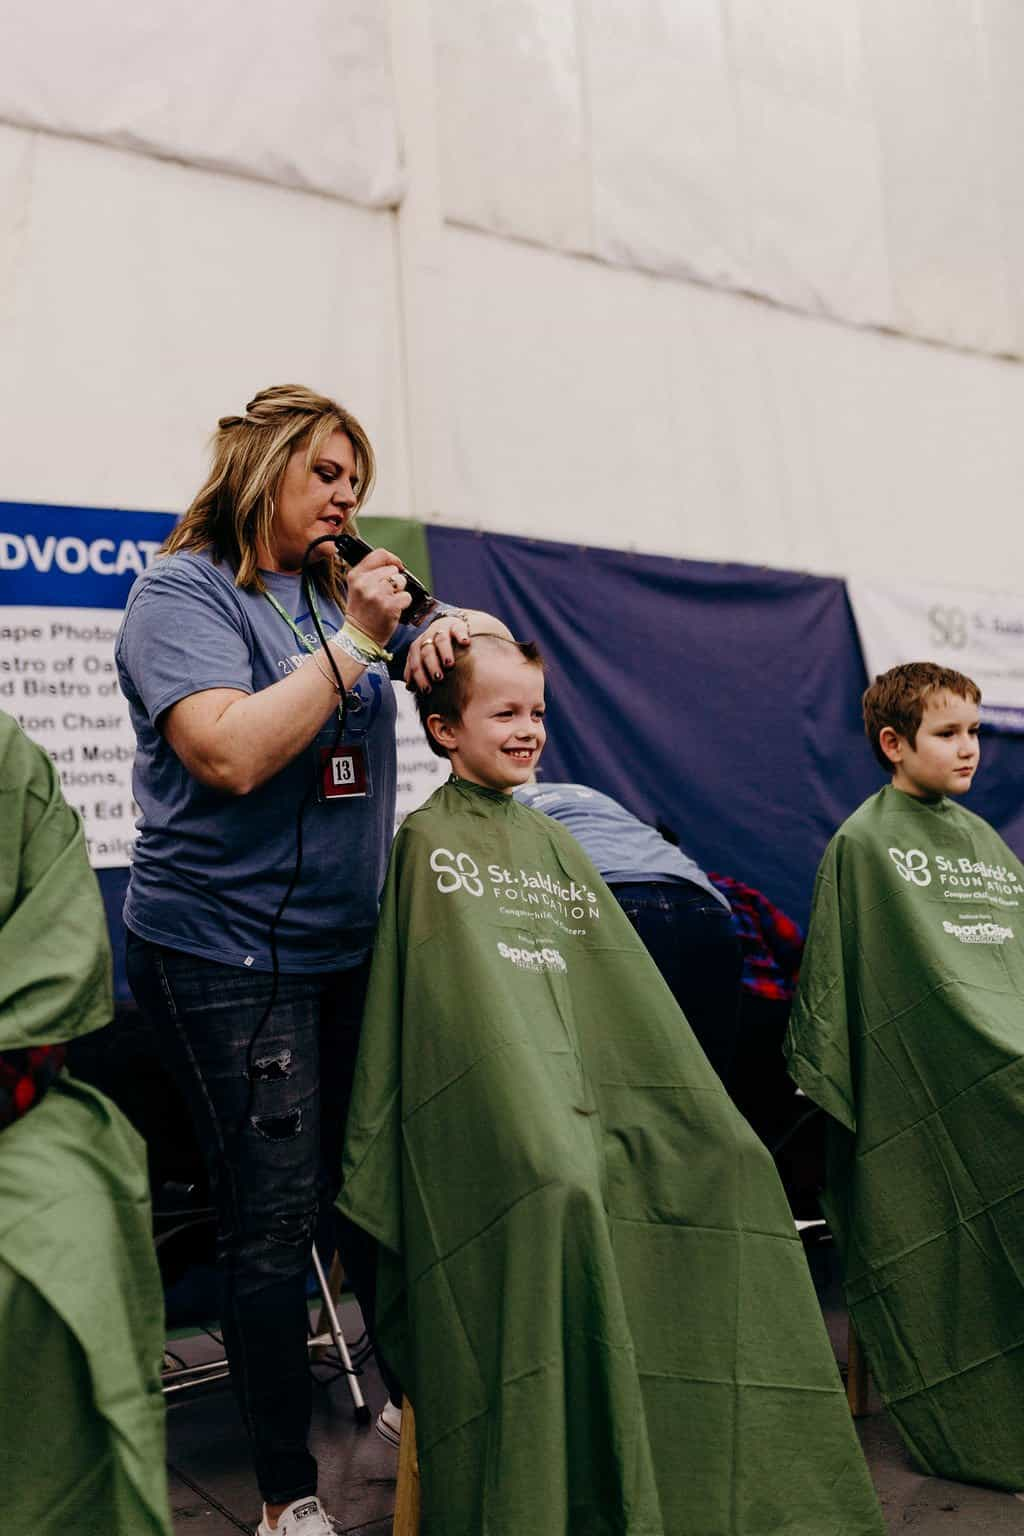 St. Baldricks | I bet you wouldn't shave your head 102